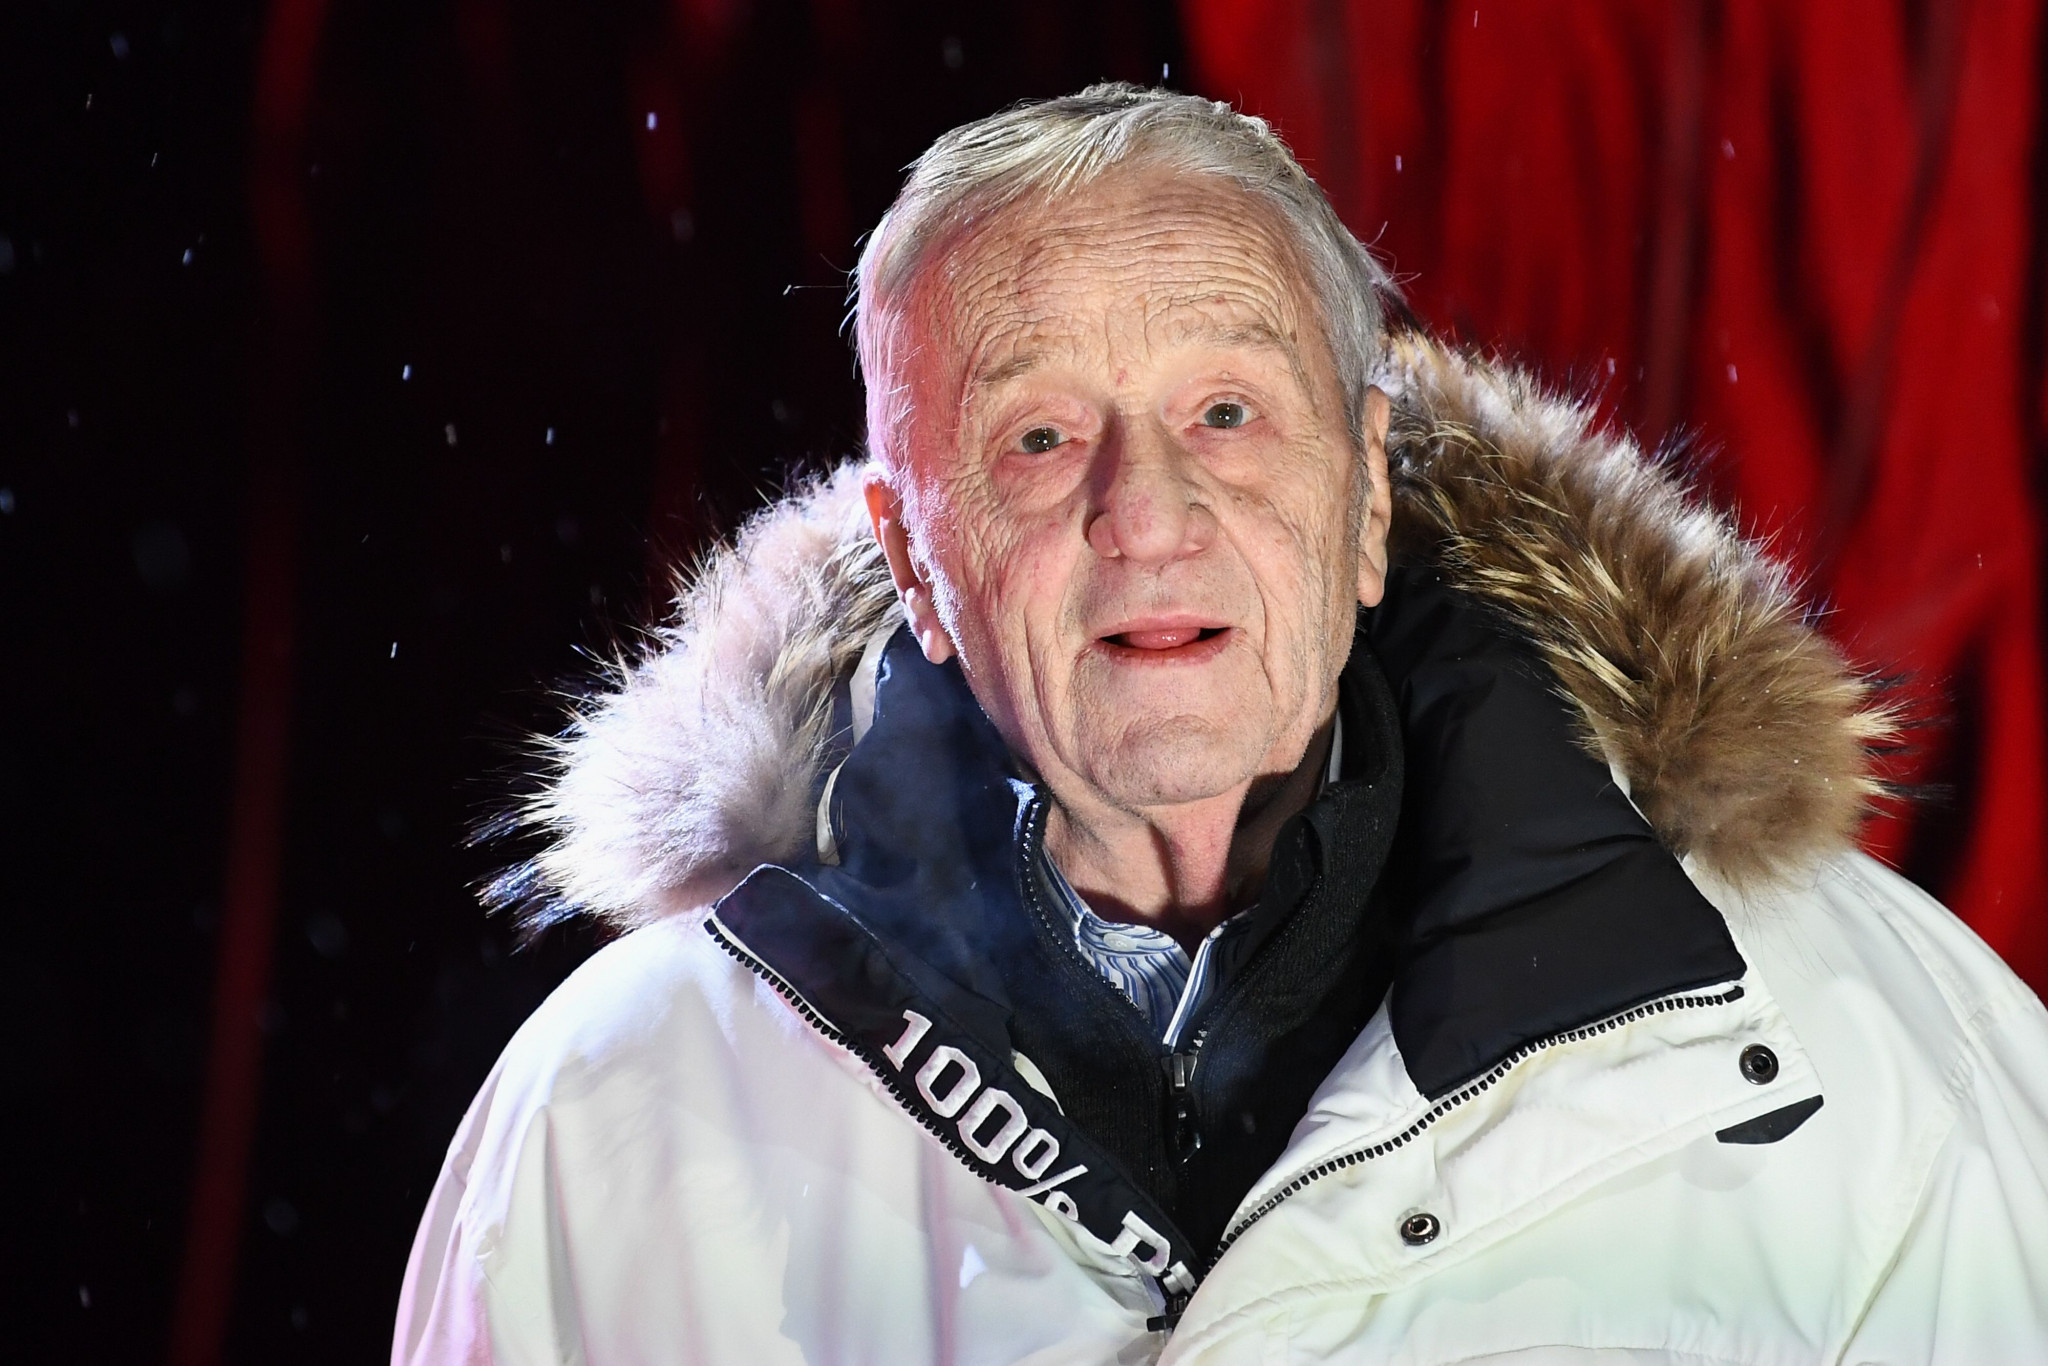 Gian-Franco Kasper will stand down as FIS President after 22 years in the job ©Getty Images